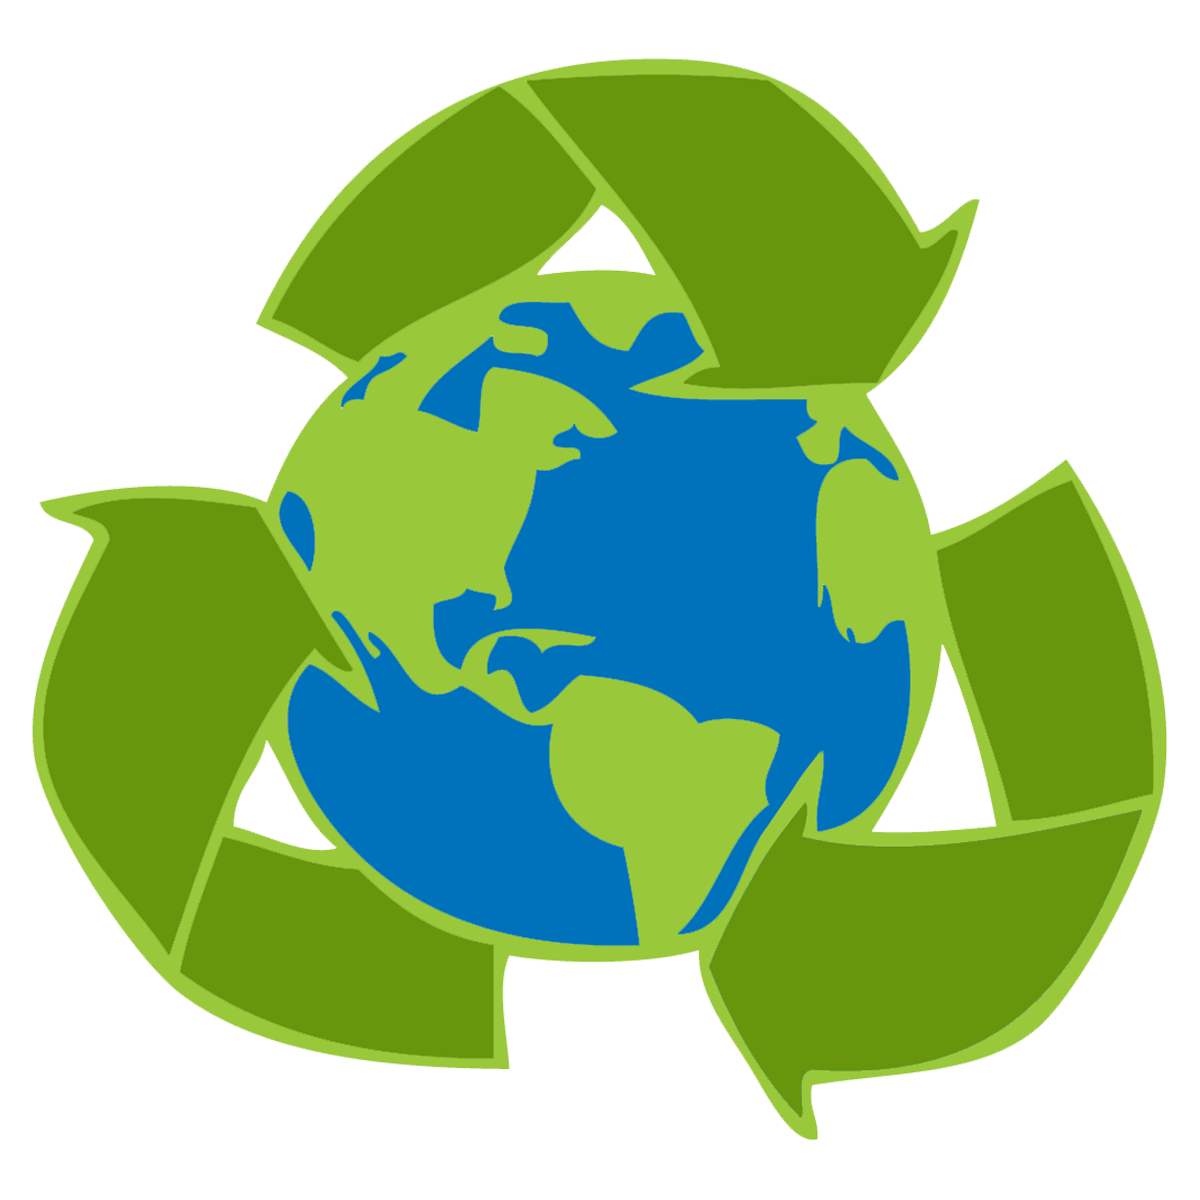 Save our planet border clipart graphic royalty free stock Free Earth Border Cliparts, Download Free Clip Art, Free ... graphic royalty free stock